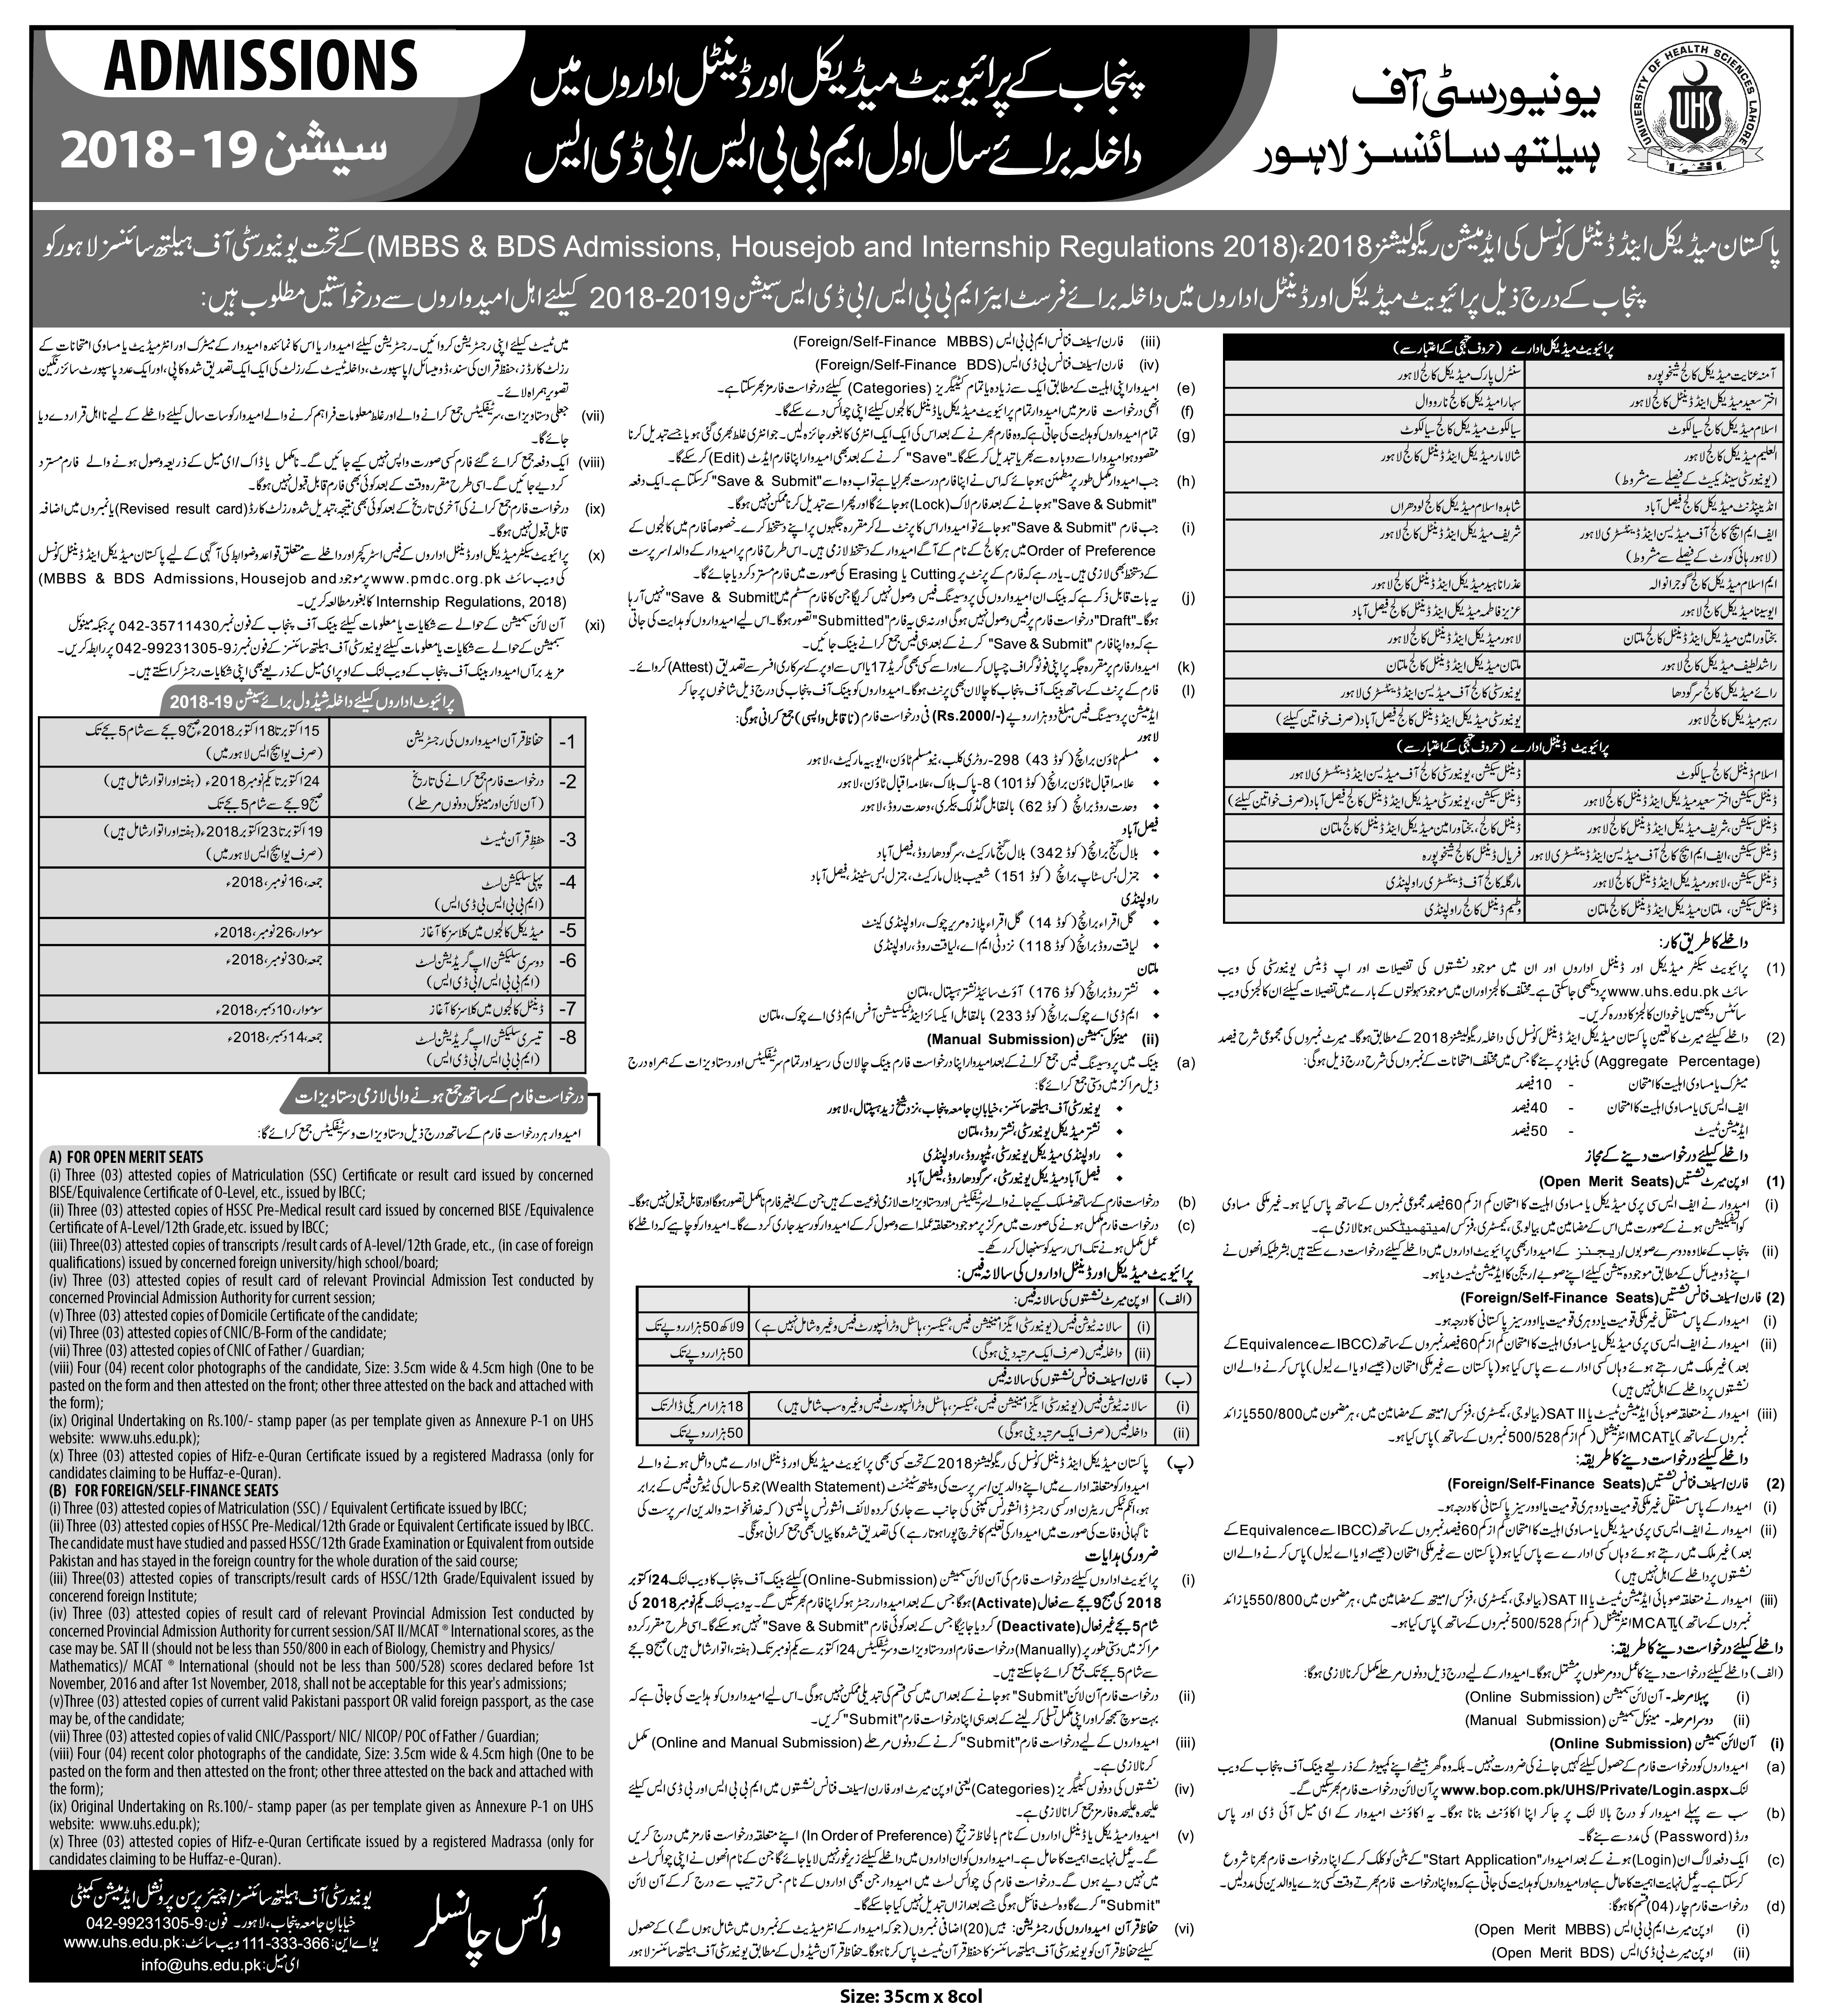 Admissions for Private Medical & Dental Colleges/Universities '18